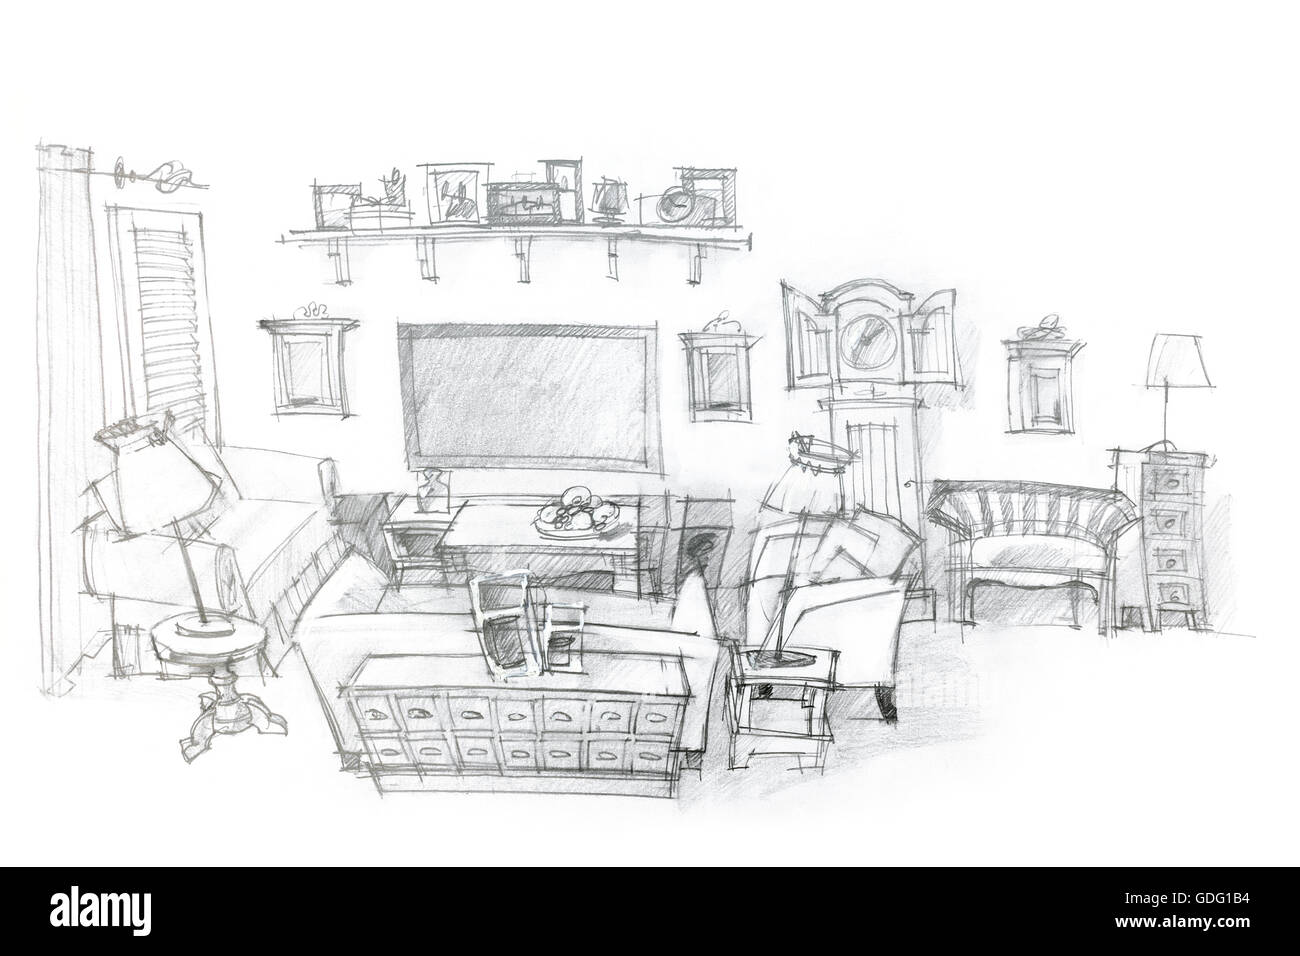 Architectural Hand Drawing Of Modern Living Room Interior Design